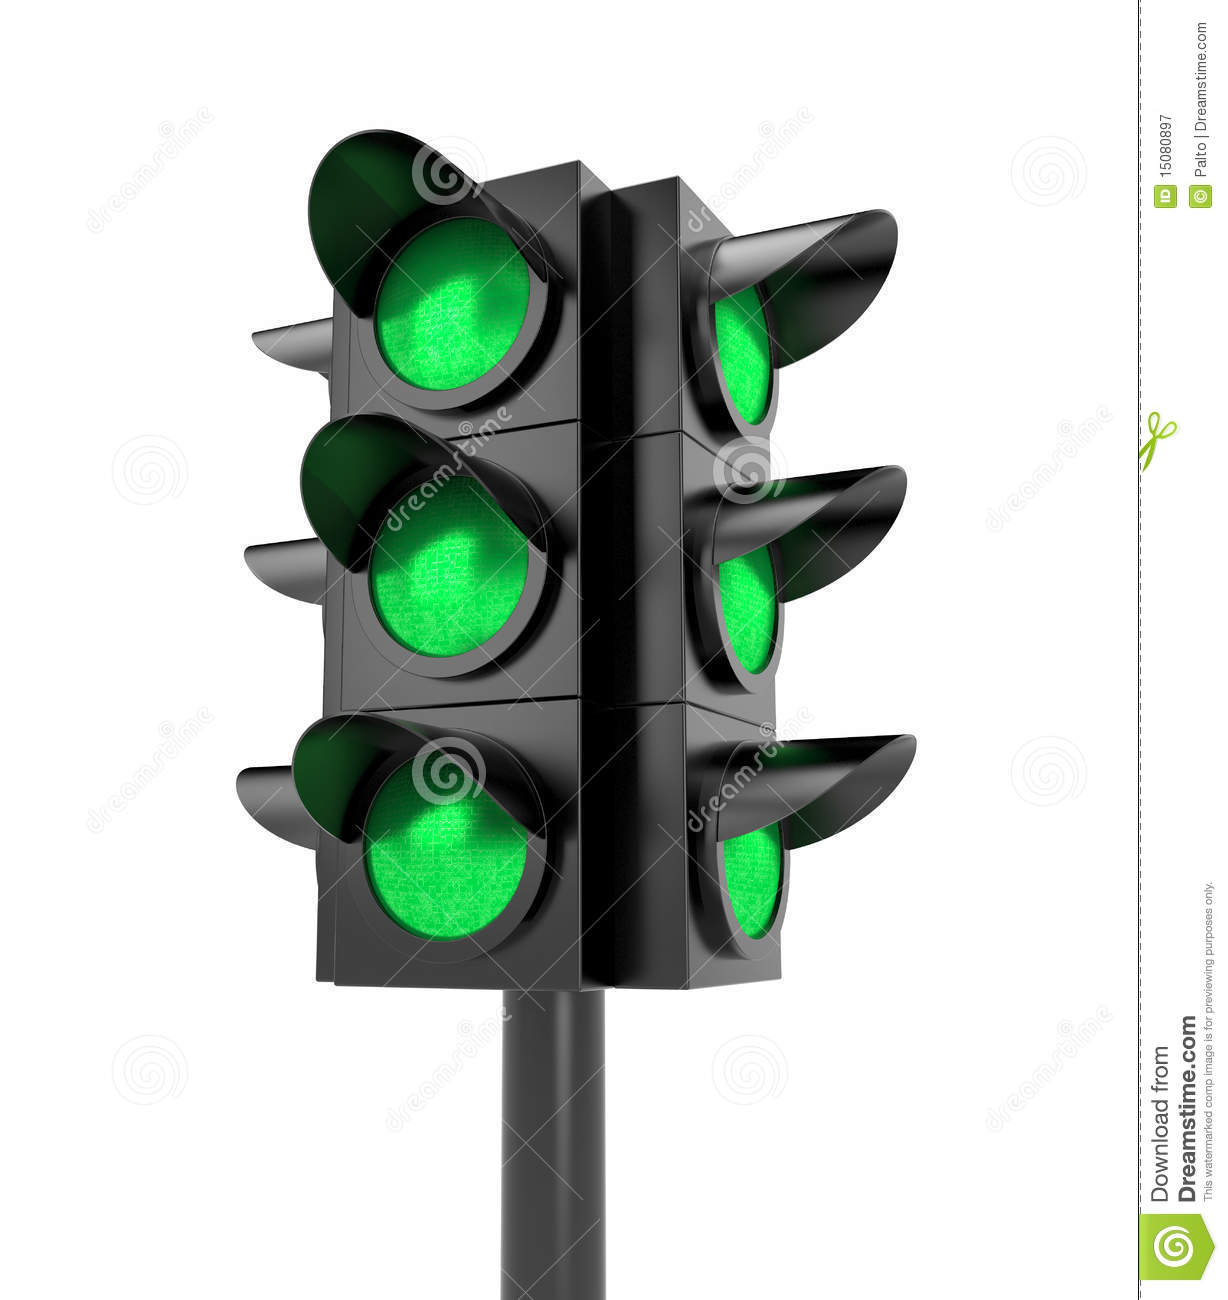 All Green Lighting 28 Images Green Traffic Lights Against Blue Sky Closeup Stock Photo Pet